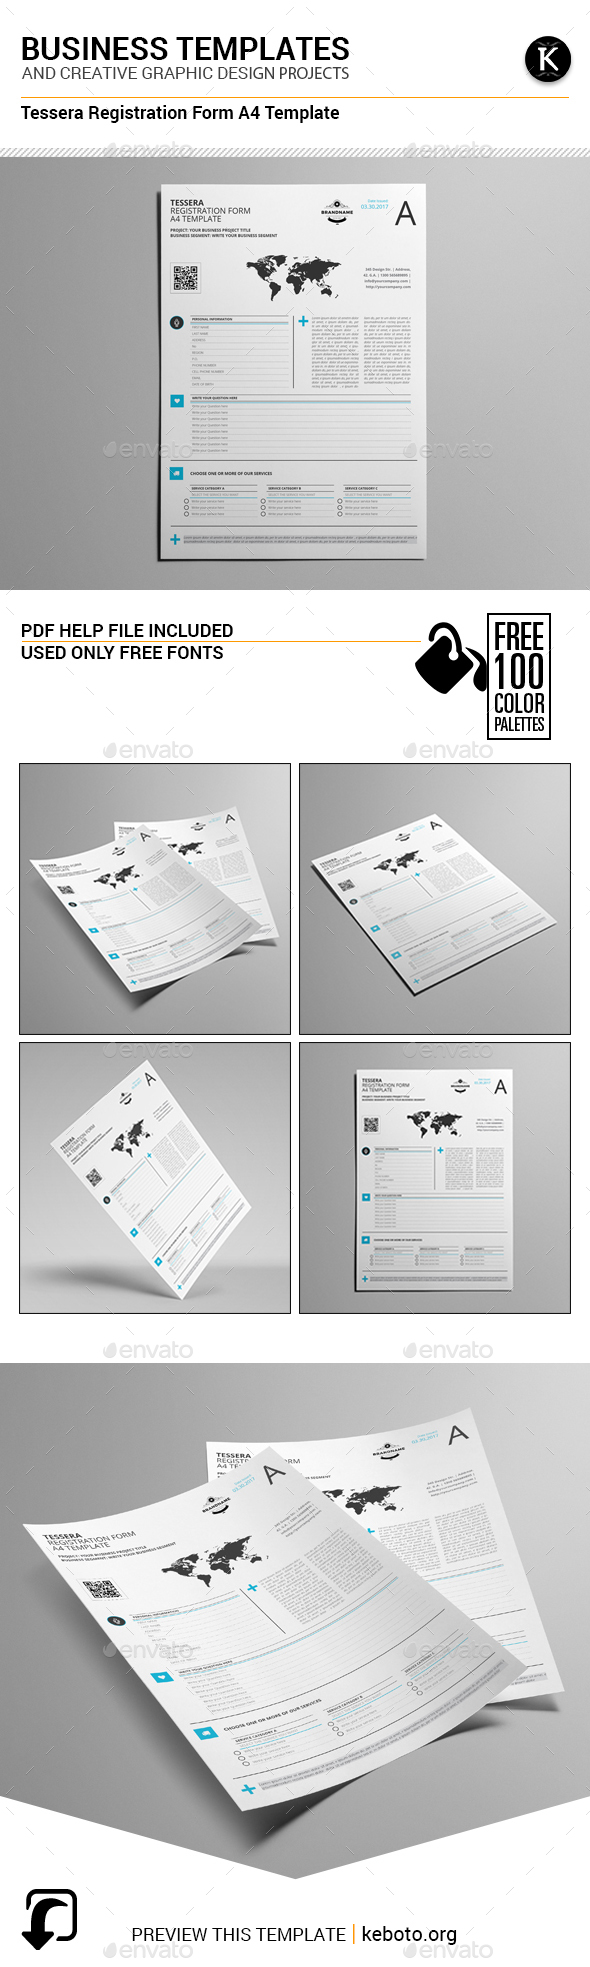 Tessera Registration Form A4 Template - Miscellaneous Print Templates